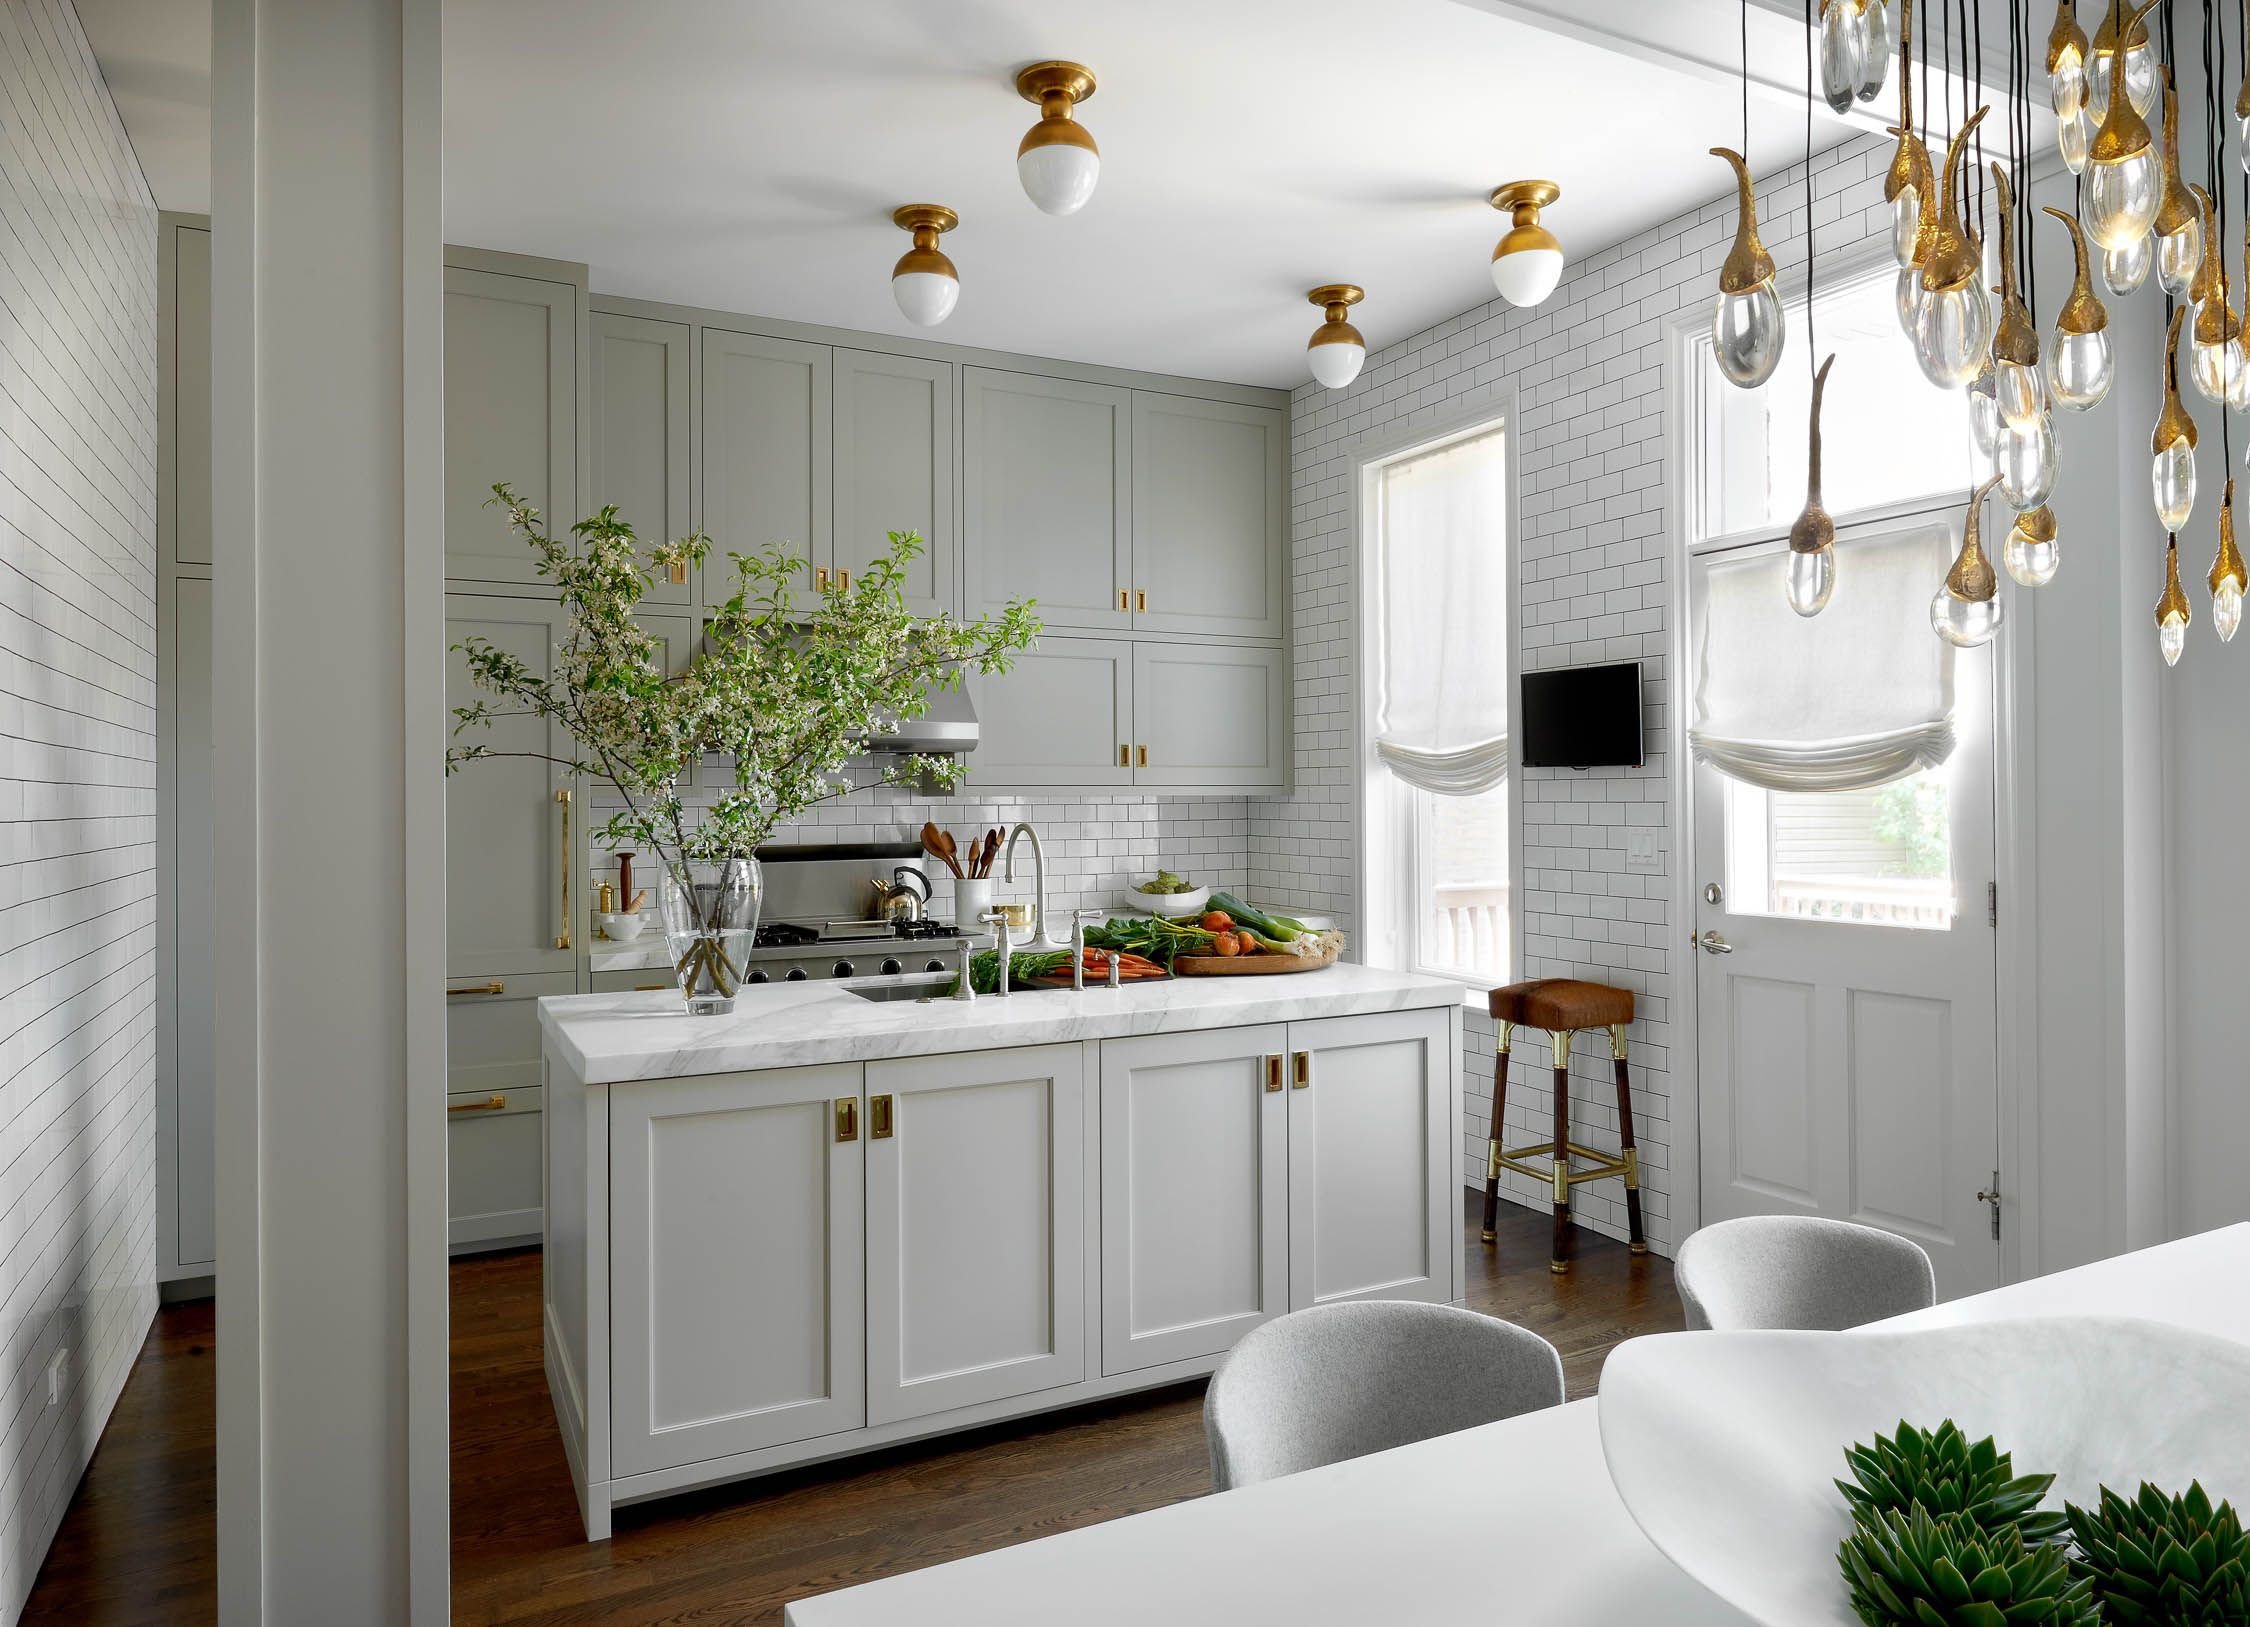 Chicago-Lisa-Berma-Design-2 | Kitchen design small ...